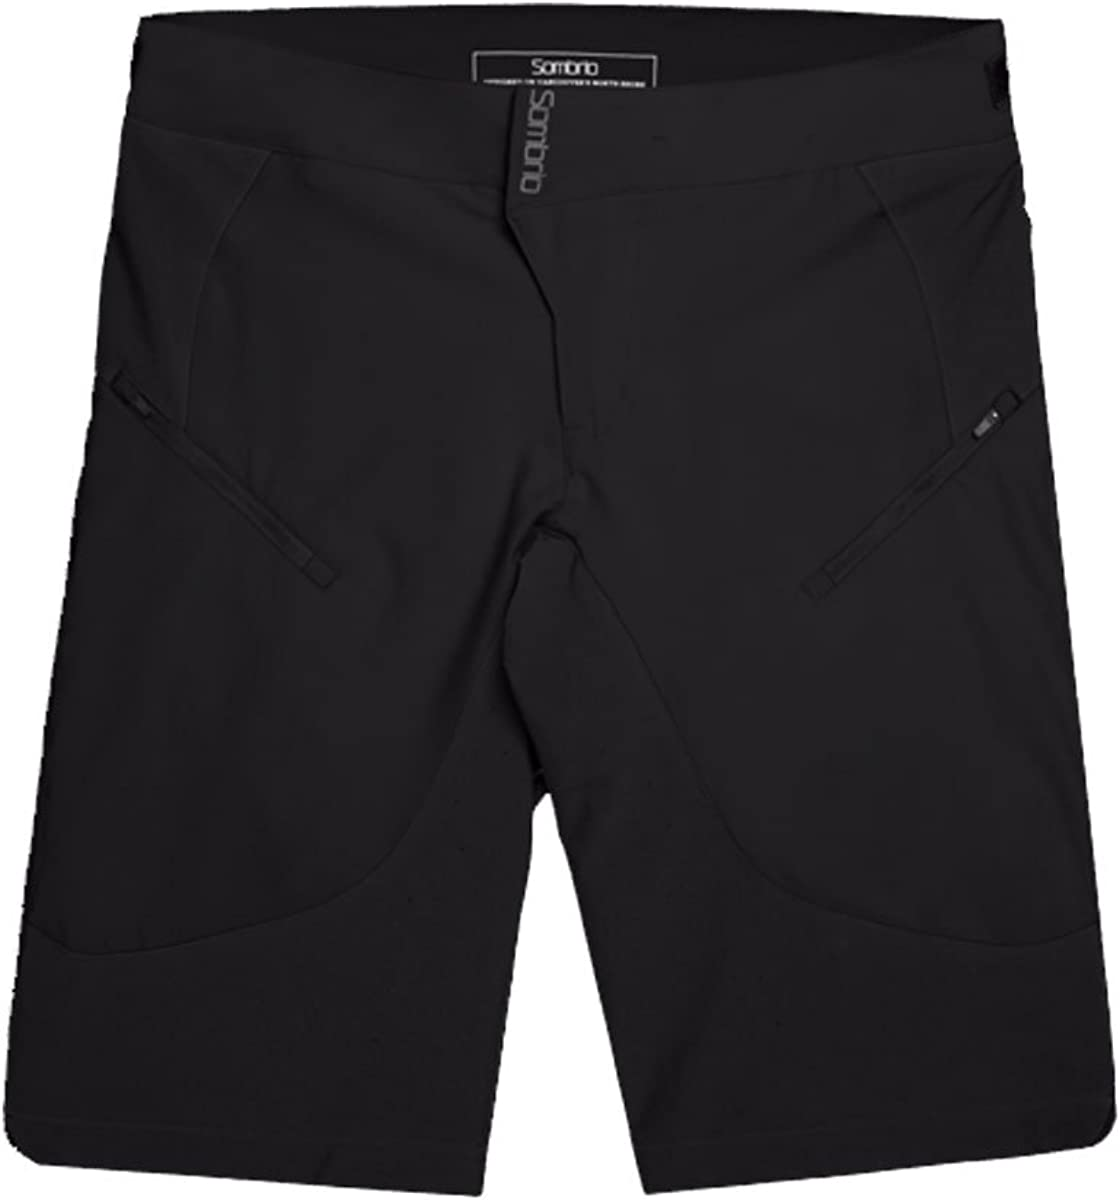 Sombrio Summit Shorts Women's Ranking Be super welcome TOP8 -